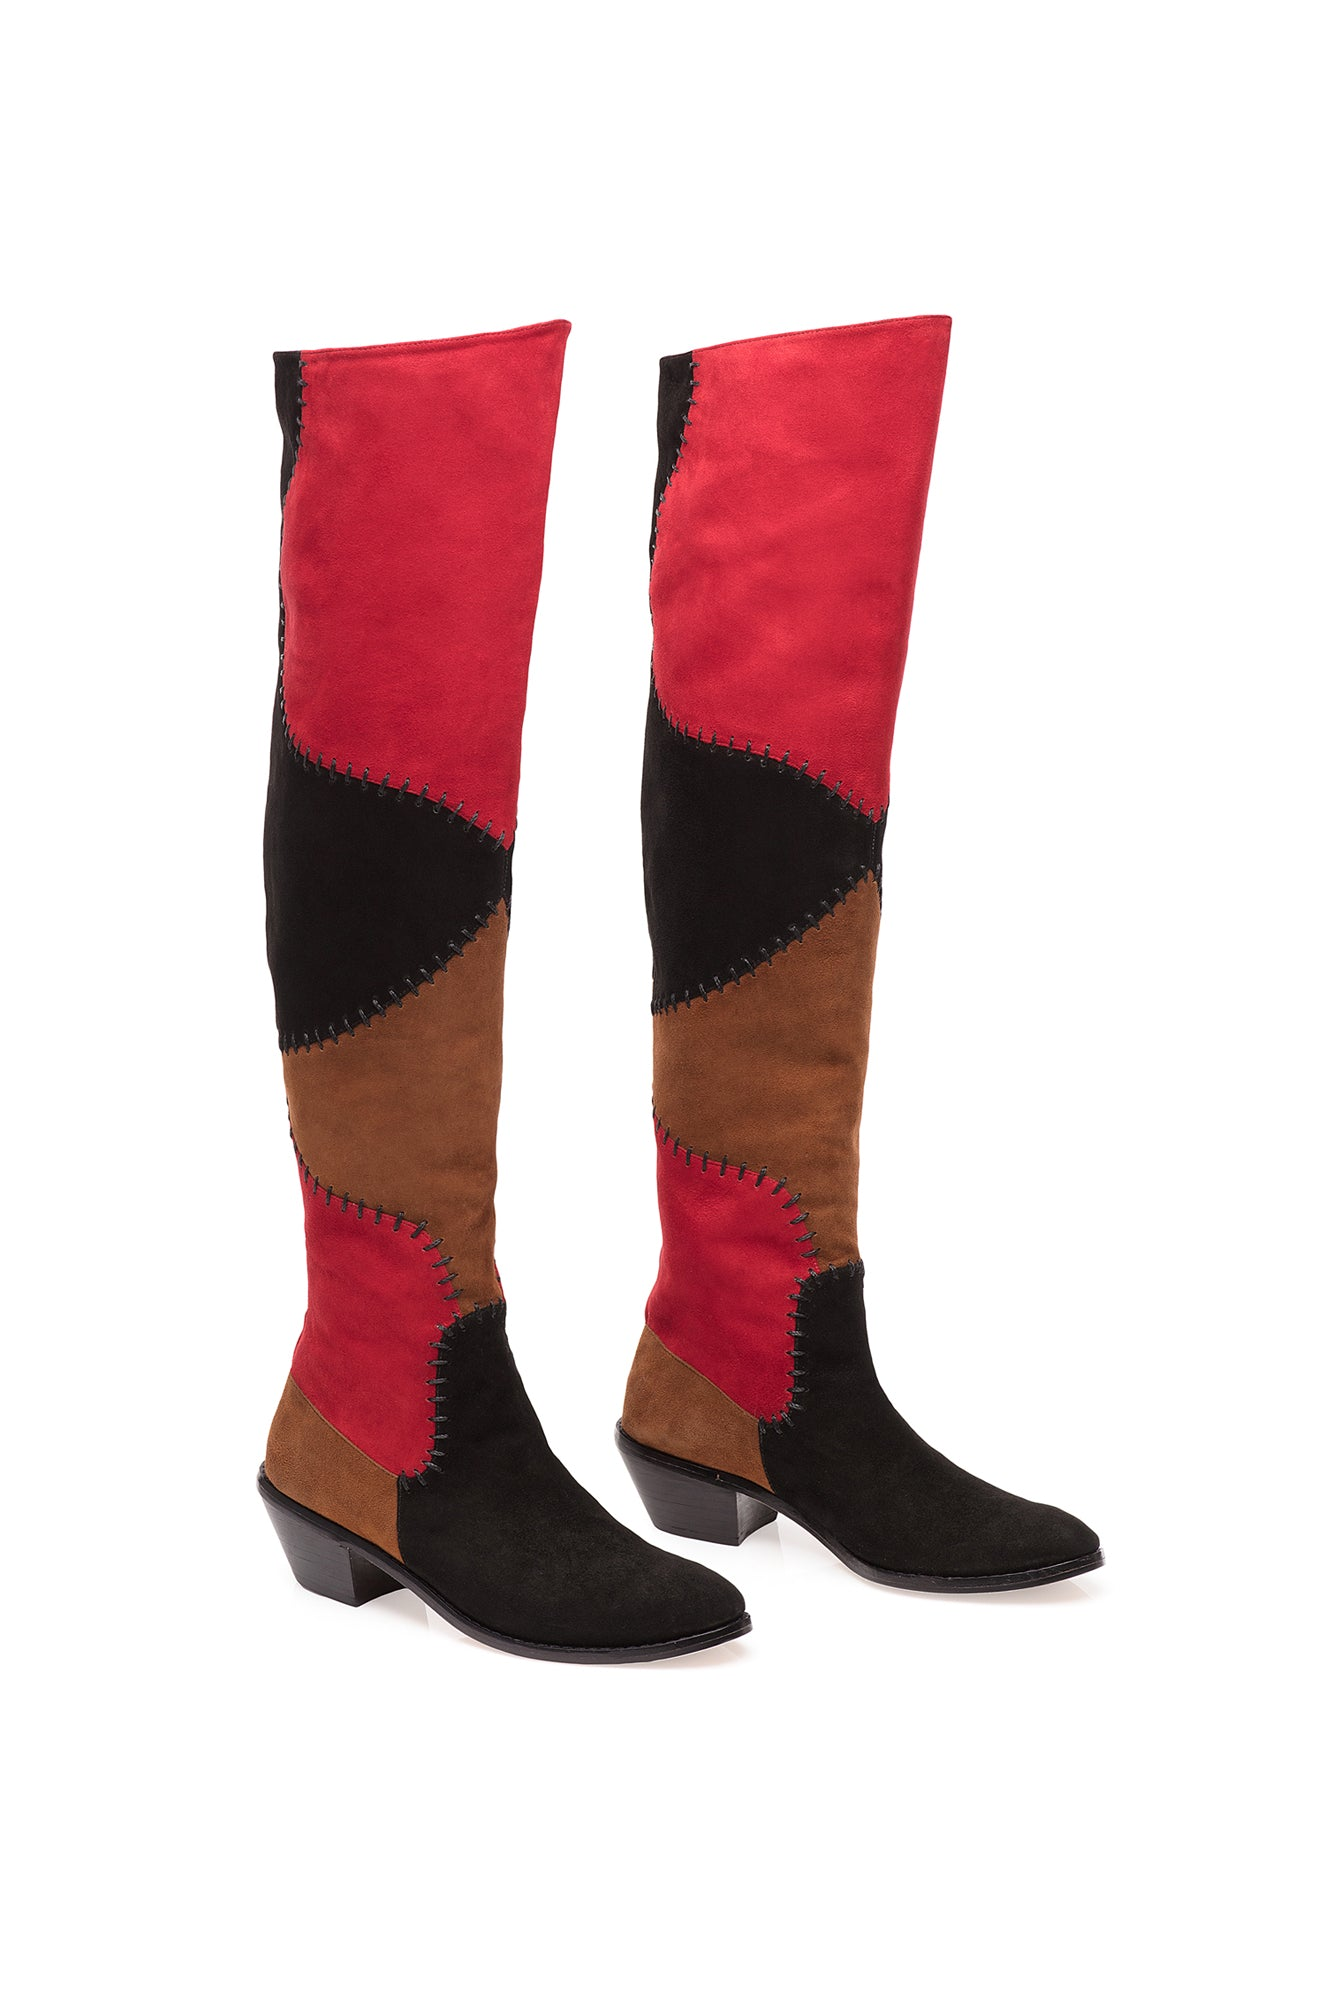 Carolina K Patch Boot Black/Red